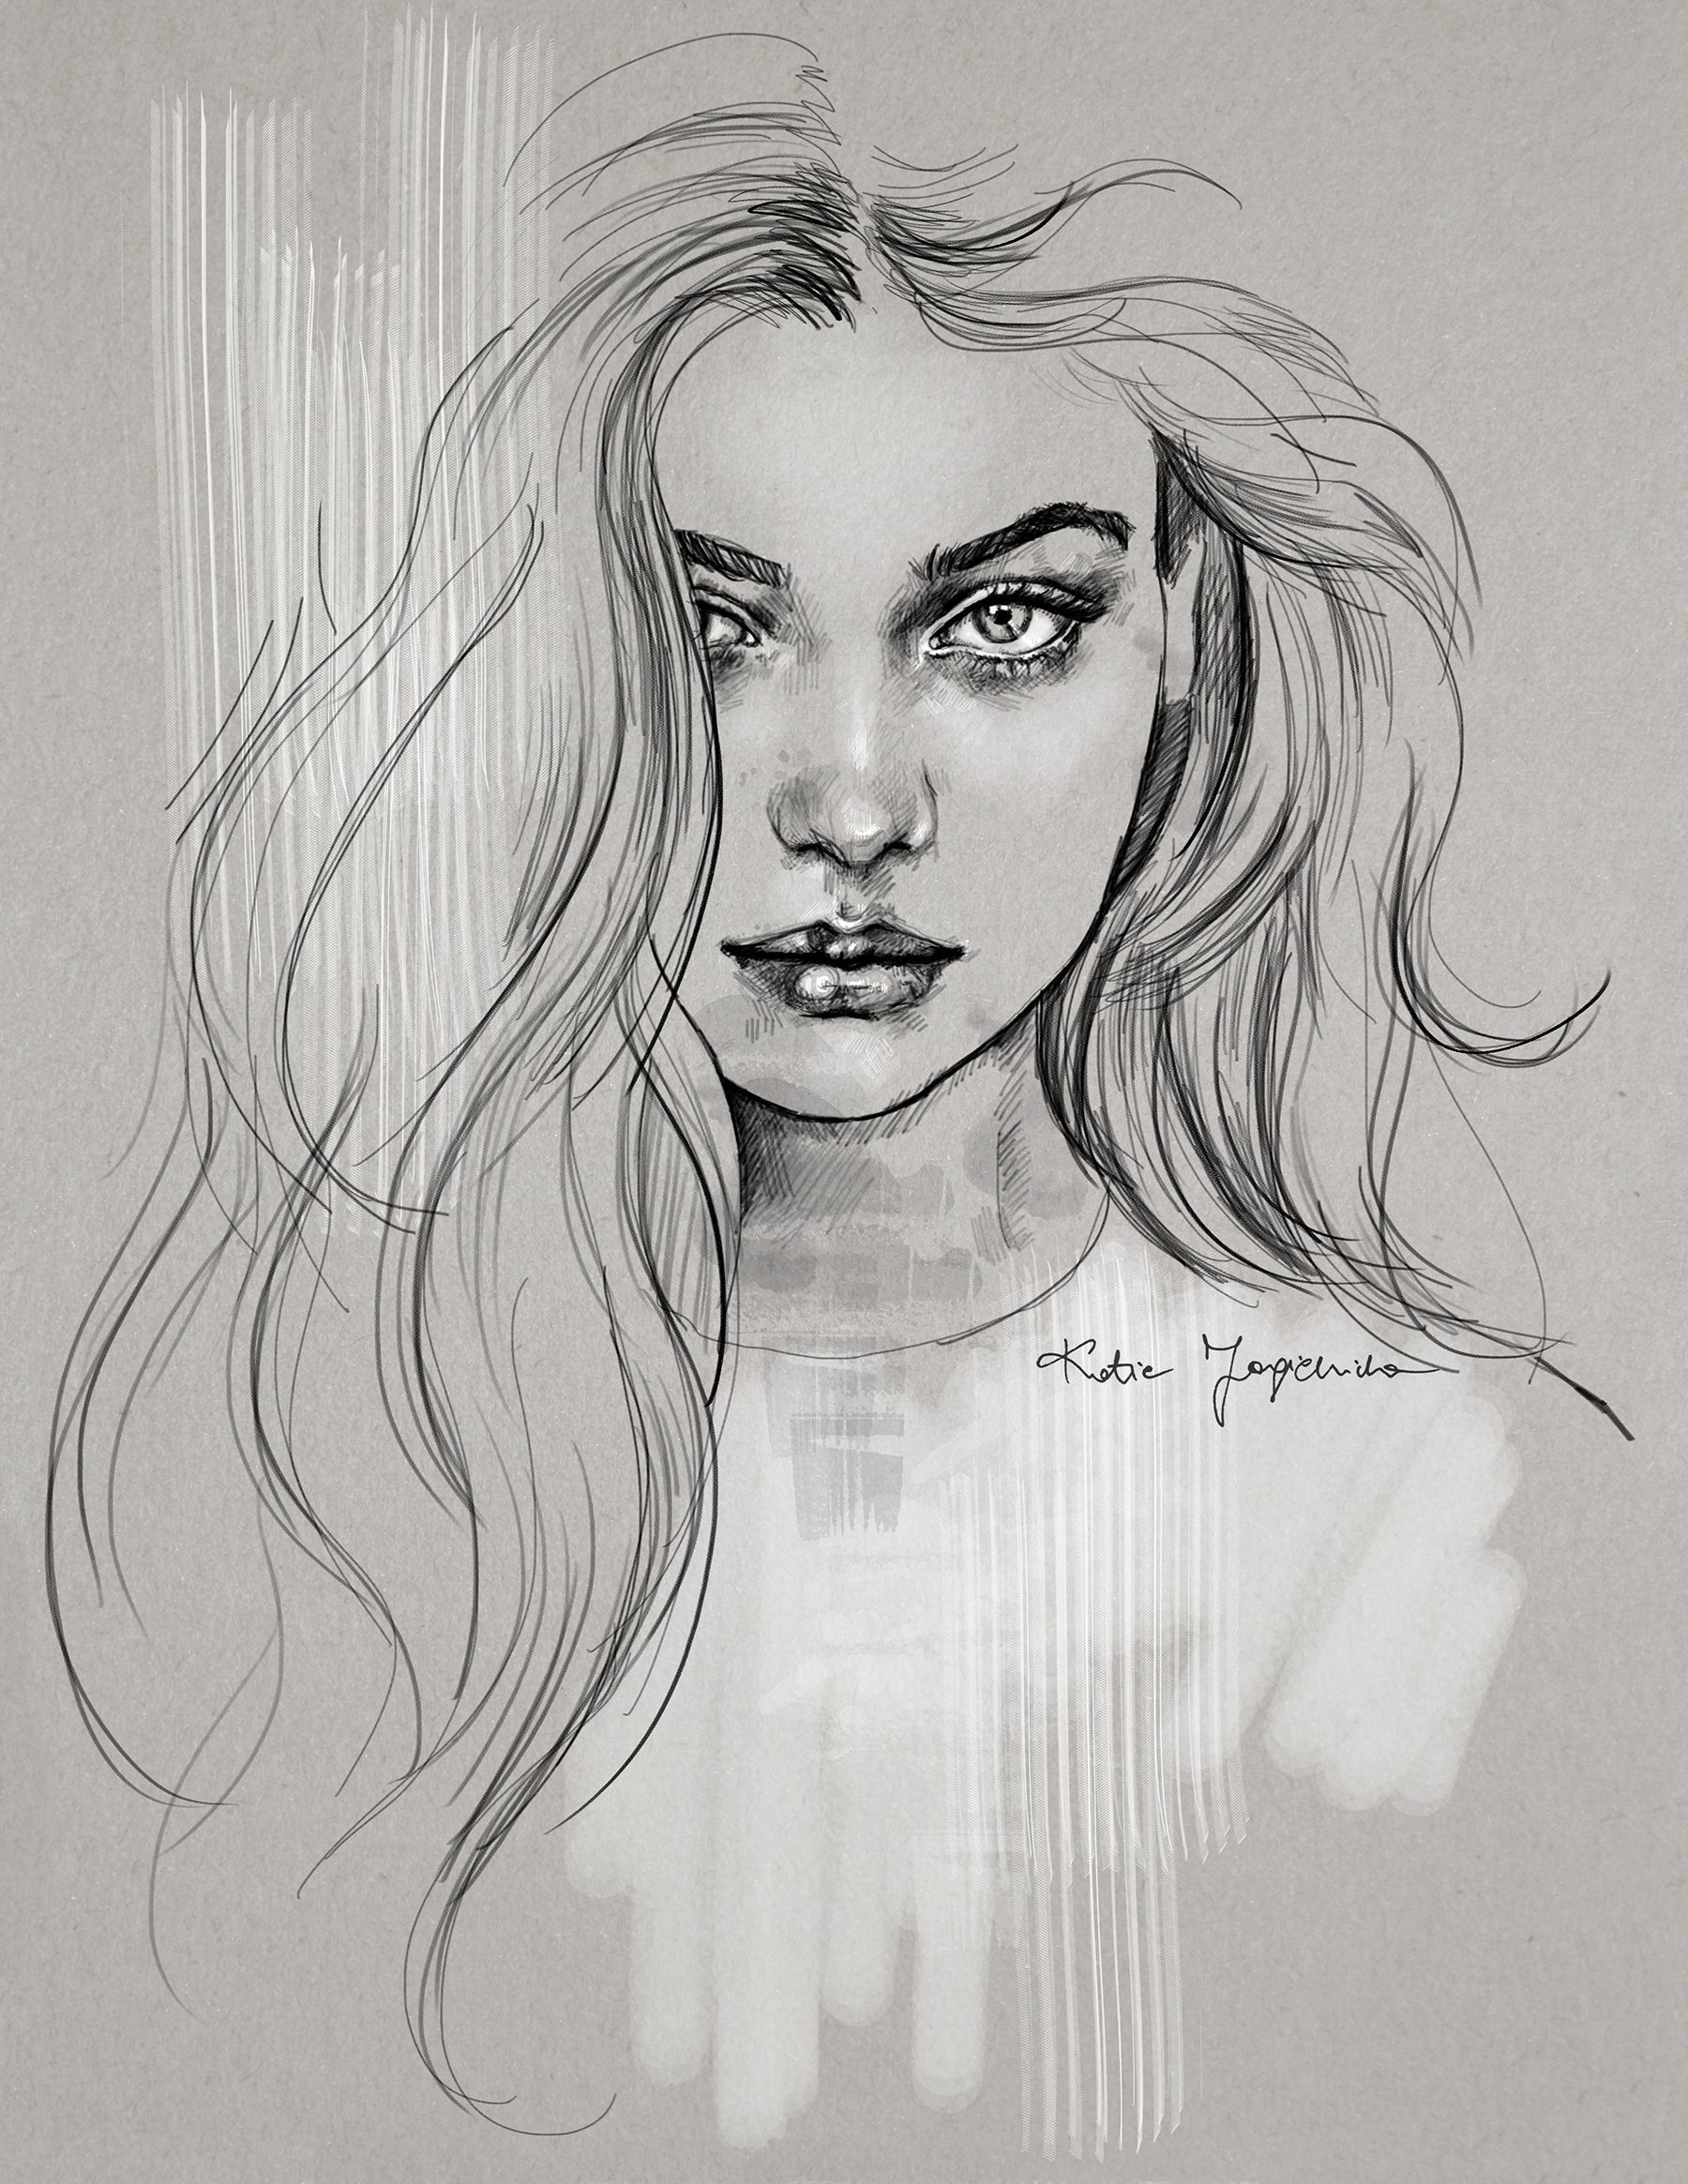 The Most Beautiful Drawing Ever An Absolute One Of The Best Girl Sketches I Ve Ever Seen In My Deviantart Drawings Face Drawing Portrait Drawing